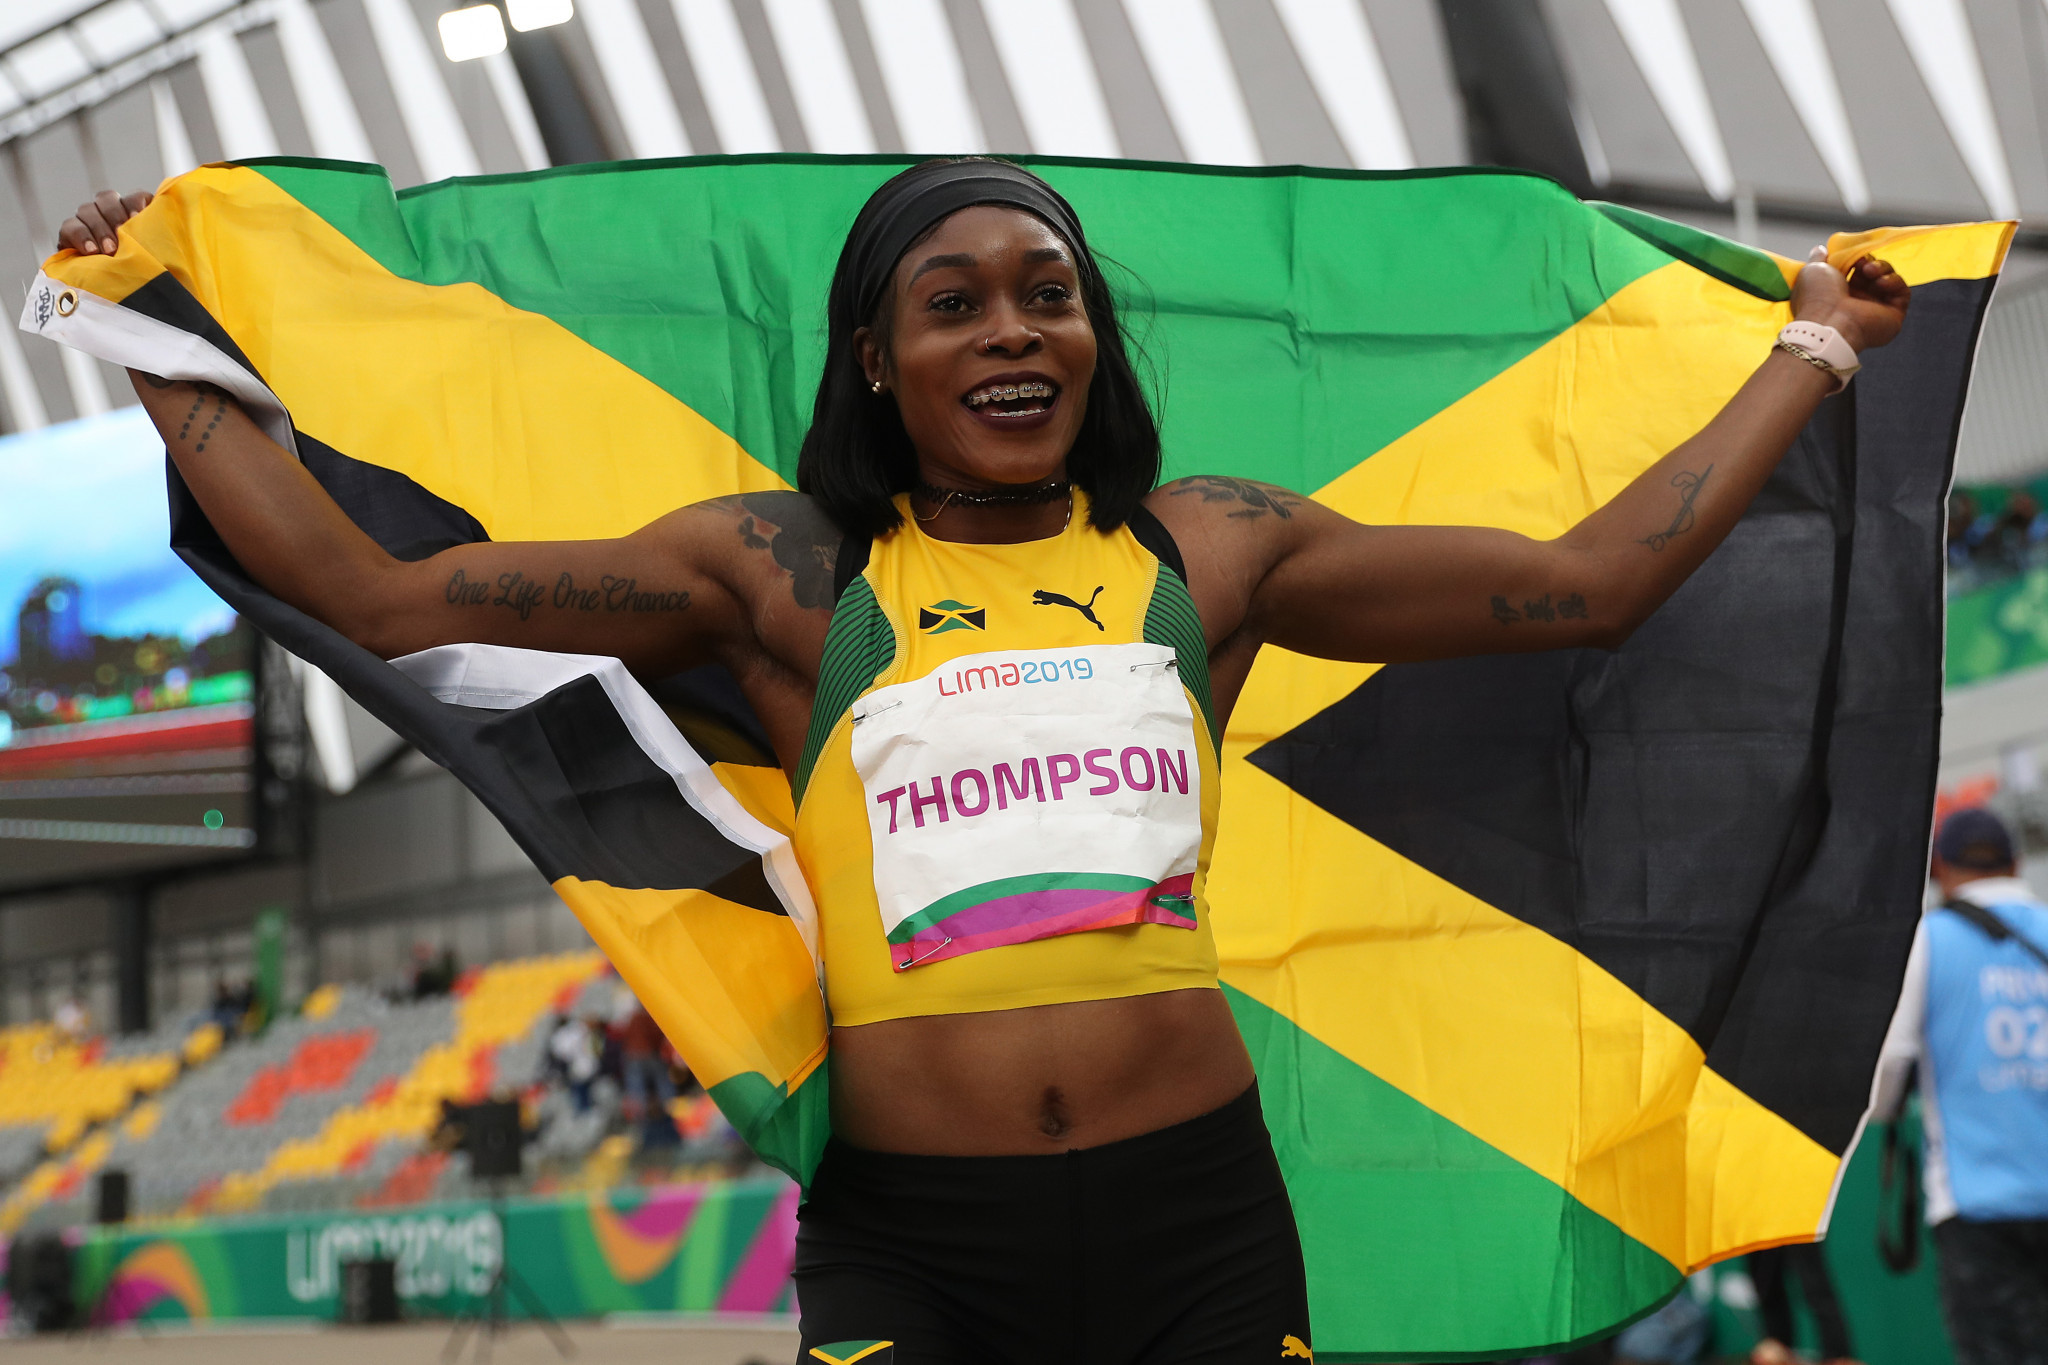 Sprint stars shine and glass shatters at Lima 2019